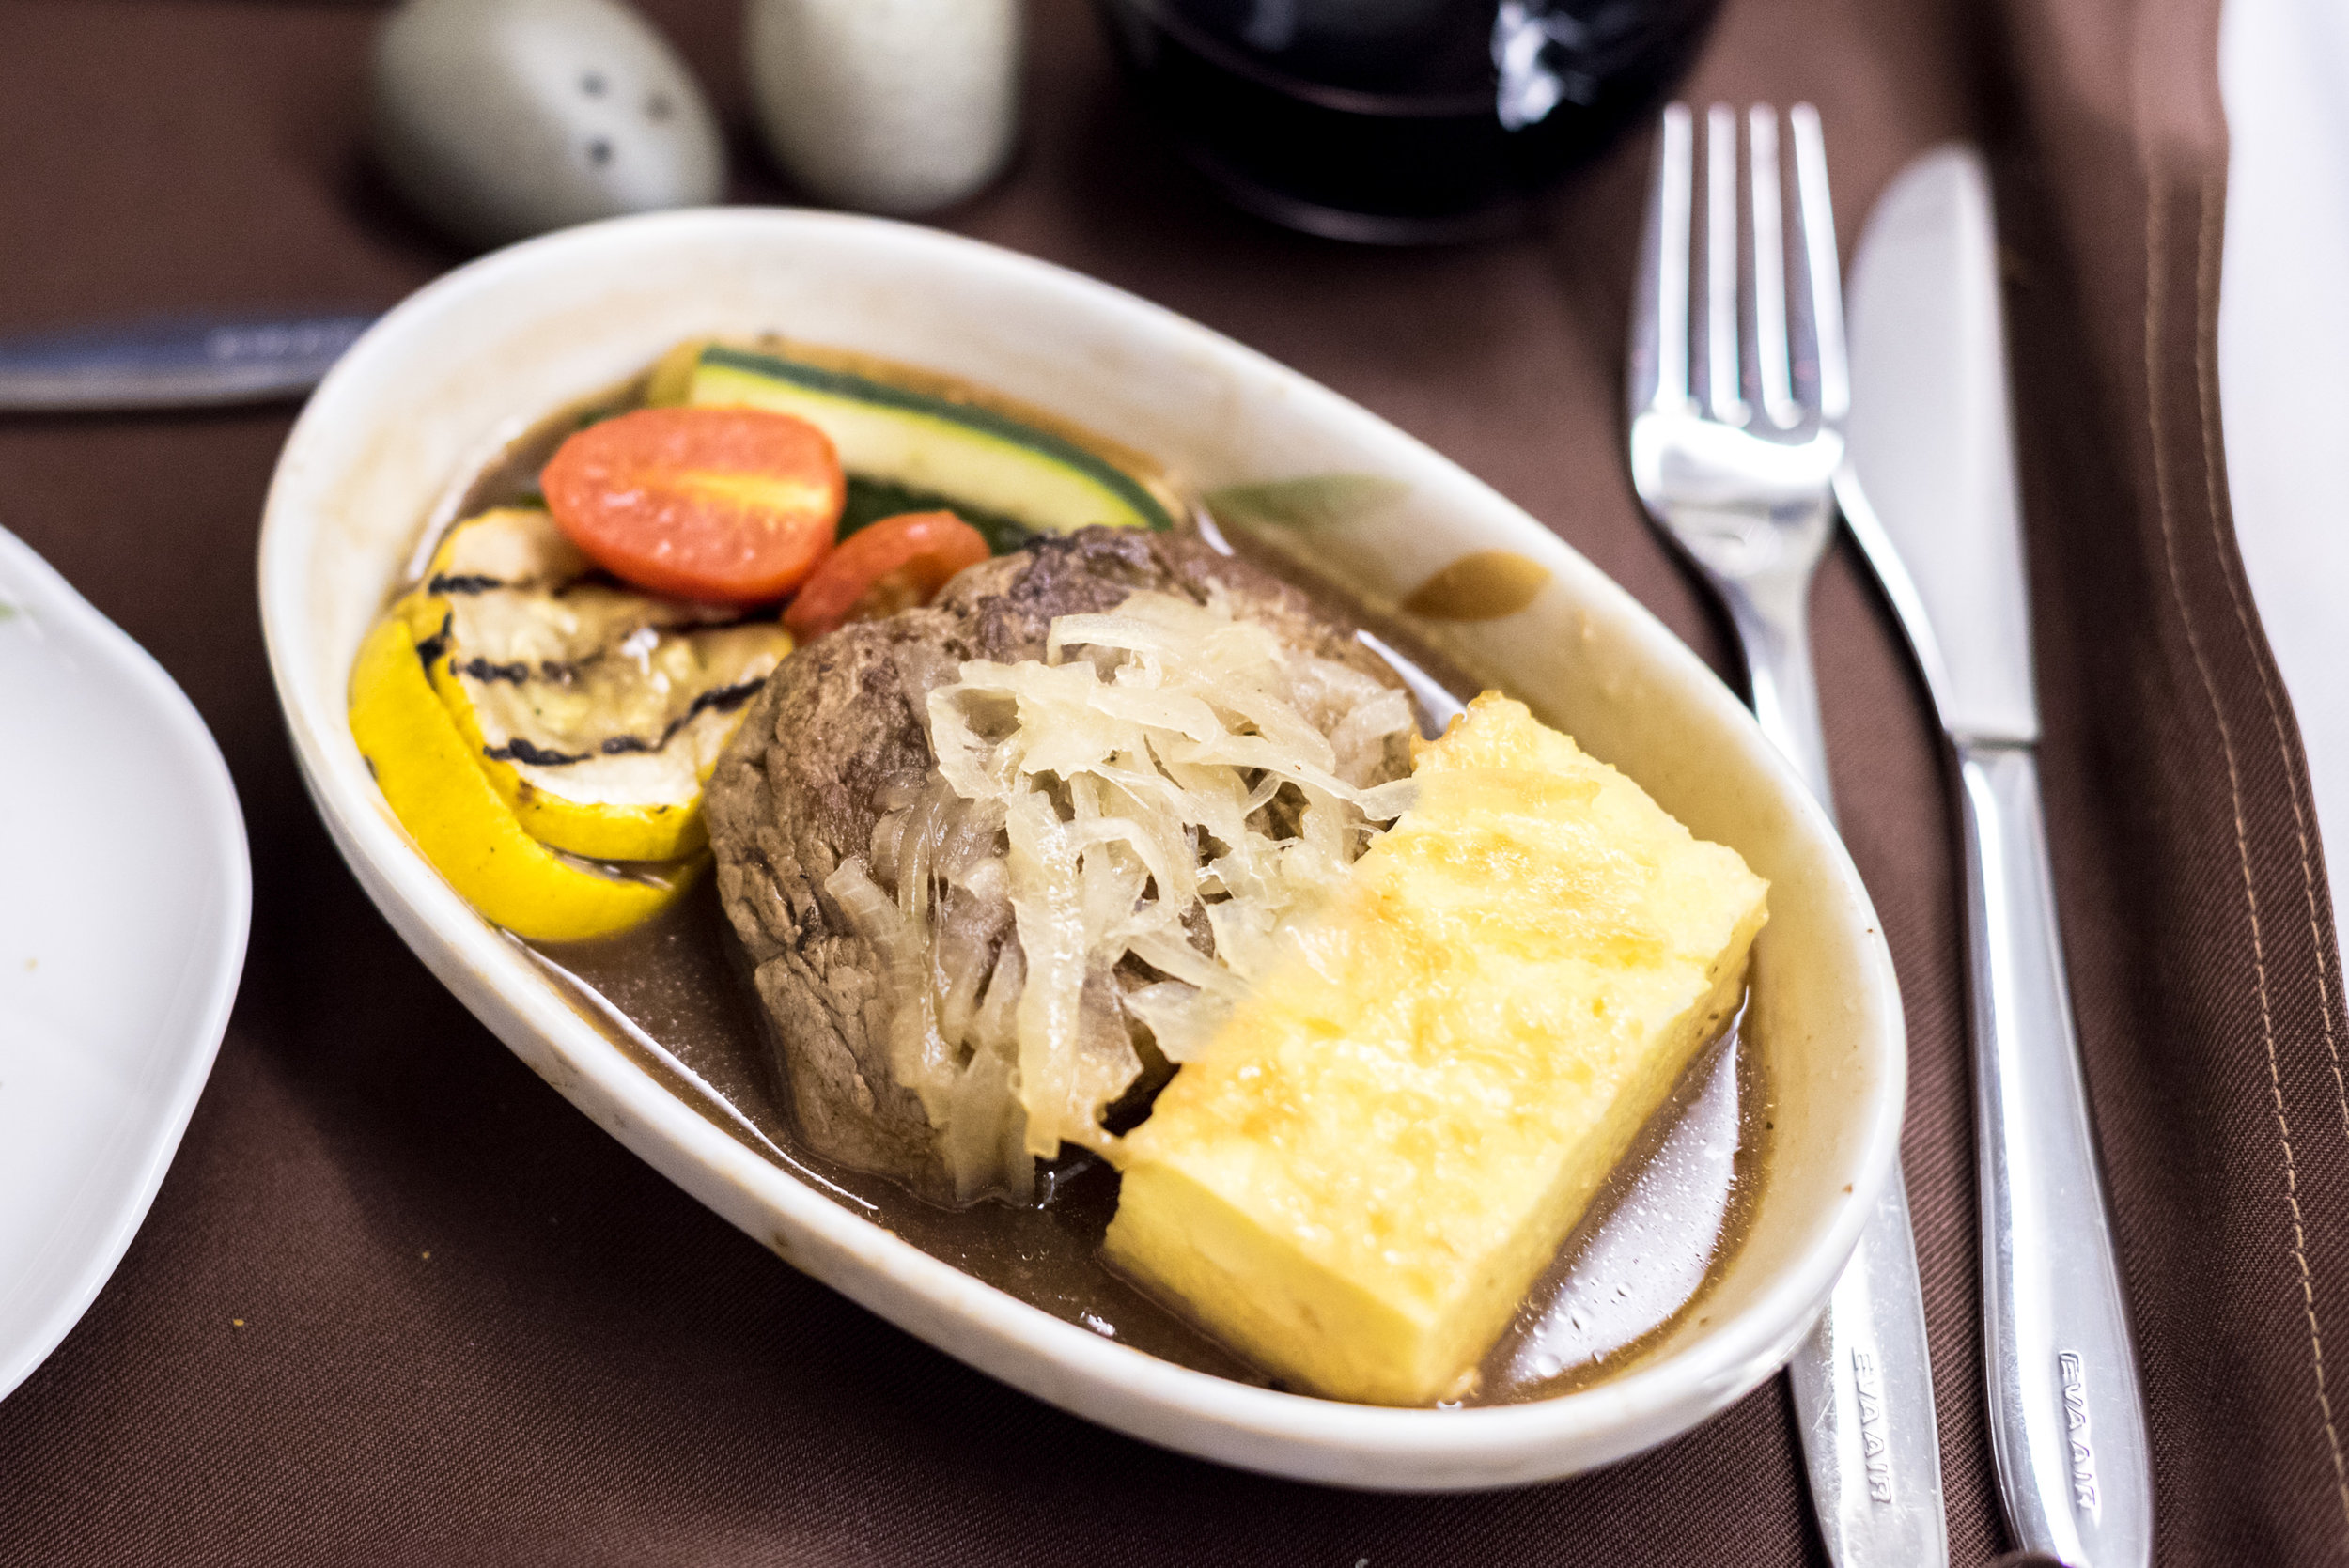 Grilled Beef Tenderloin with Madeira Sauce, Mixed Vegetables and Polenta Cake - Lunch Service  EVA Air Royal Laurel 777-300ER - SIN to TPE (BR226)